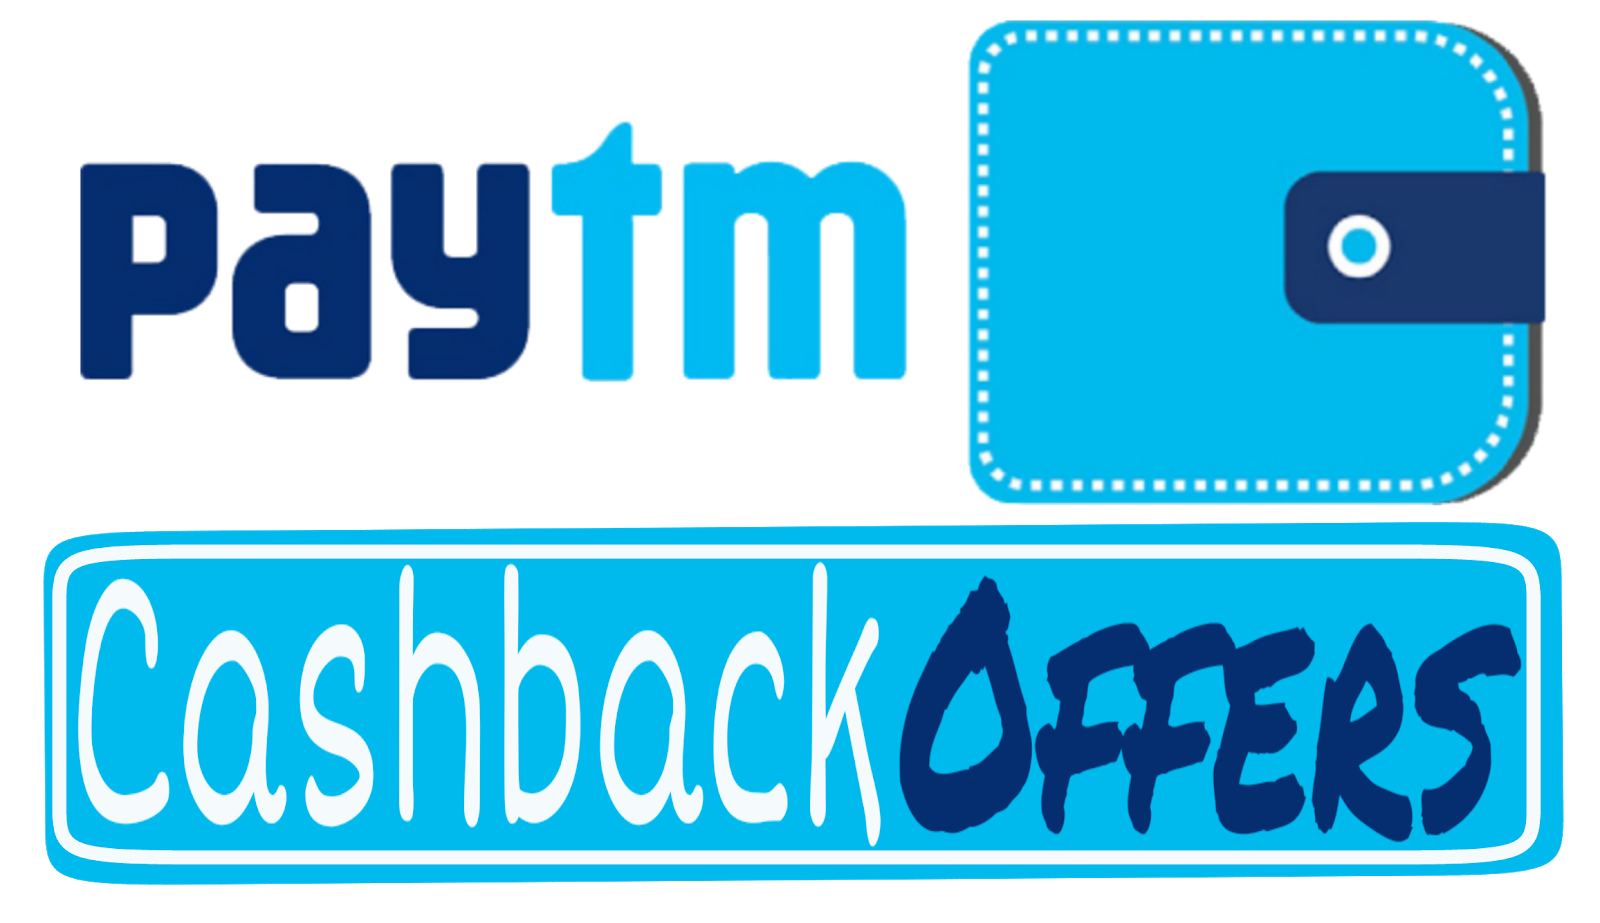 What is Paytm ? How to use Paytm ? ~ Paytm Cashback Offer